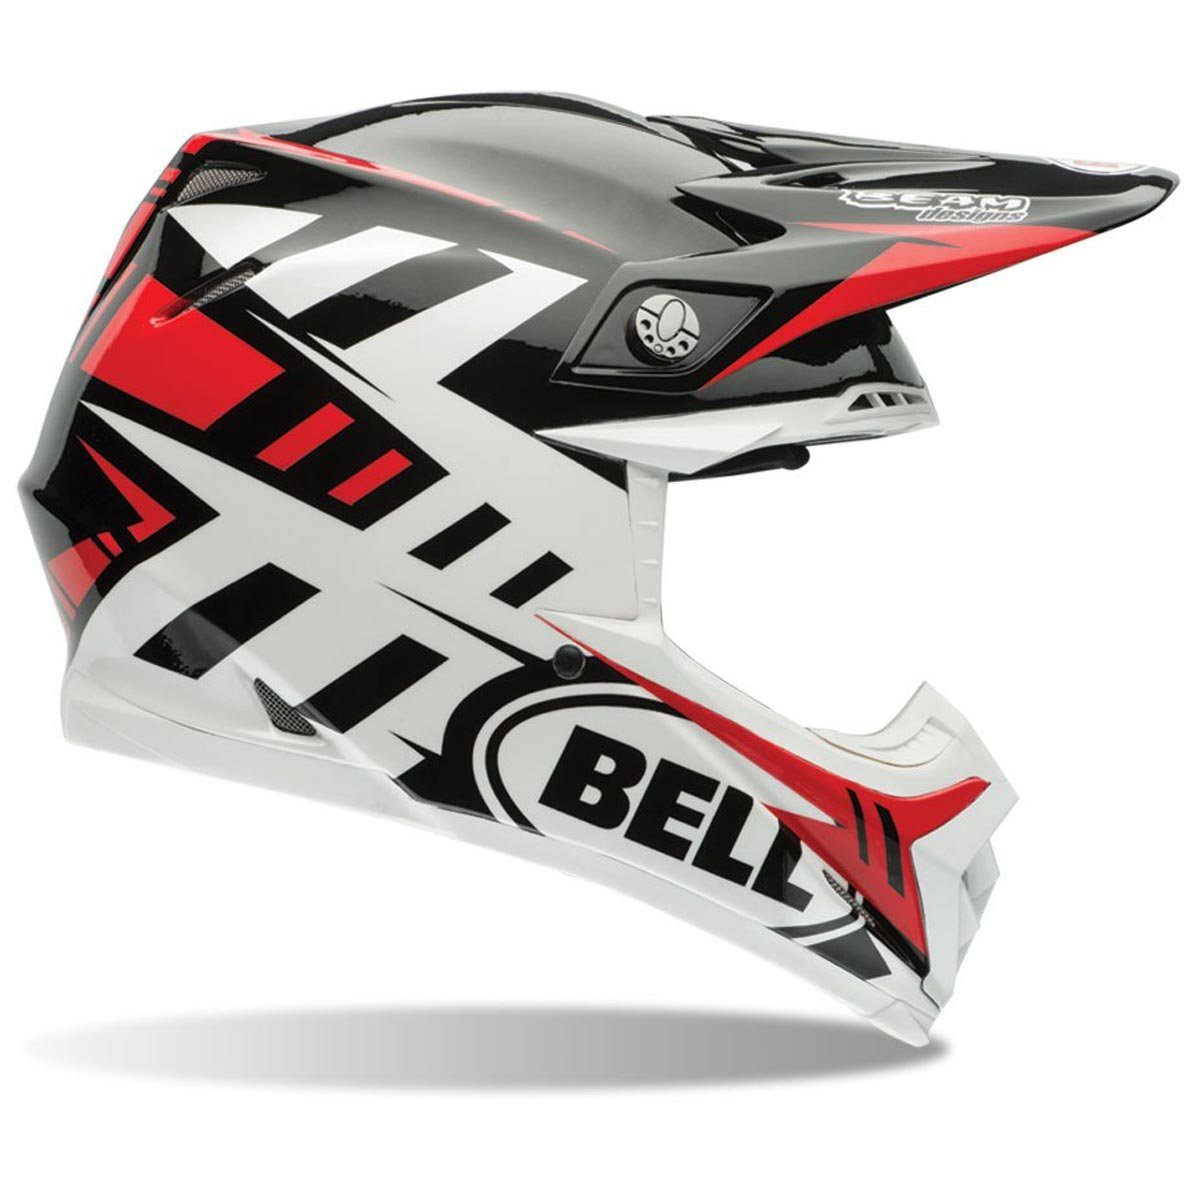 Amazon.com: Bell Moto-9 Full-Face Motorcycle Helmet (Blue, X-Small)(Non-Current Graphic): Automotive